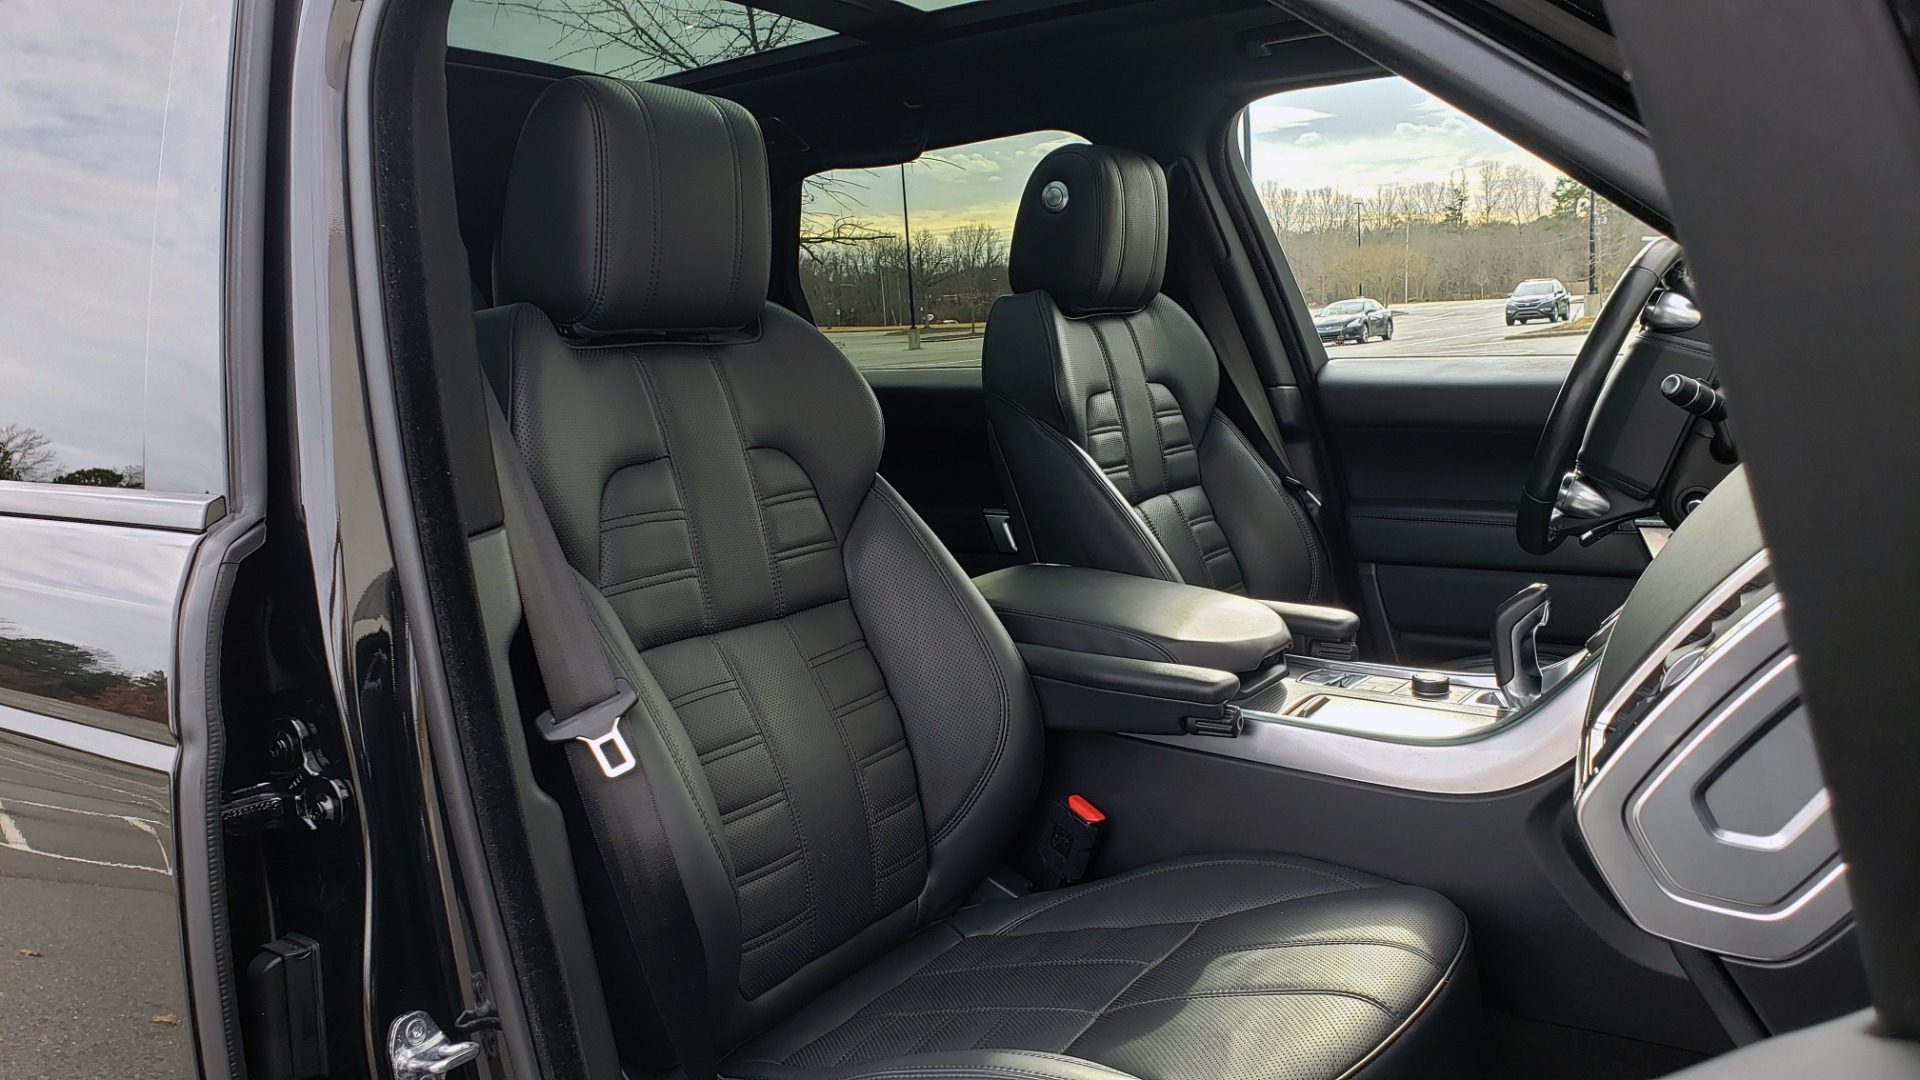 Used 2017 Land Rover RANGE ROVER SPORT HSE DYNAMIC / SC V6 / NAV / MERIDIAN / PANO-ROOF / REARVIEW for sale Sold at Formula Imports in Charlotte NC 28227 170